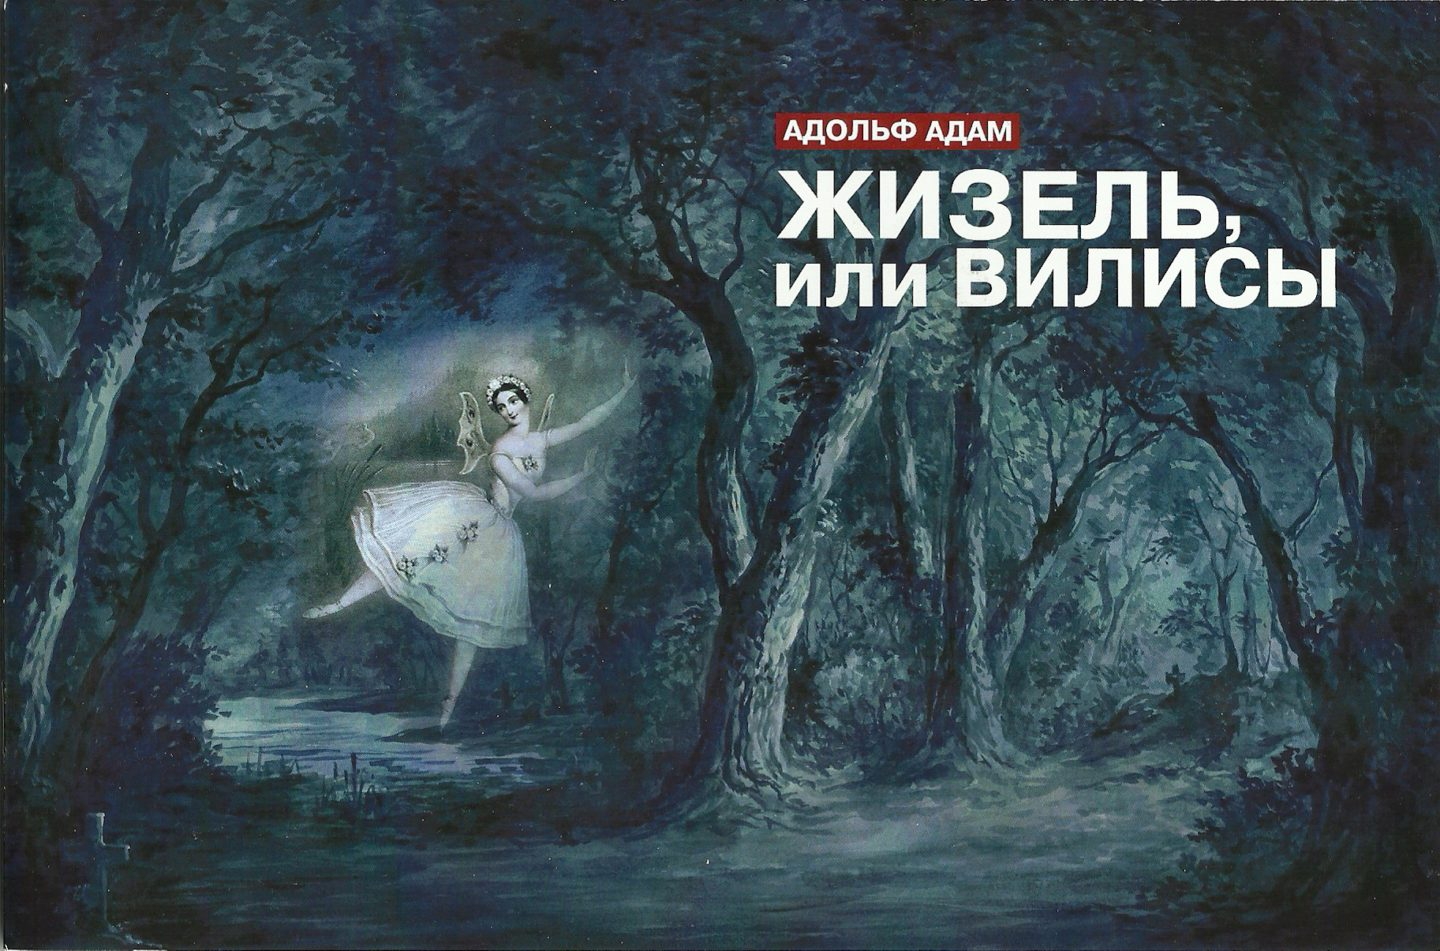 25.5.2016 Giselle in Novosibirsk Opera / NOVAT program